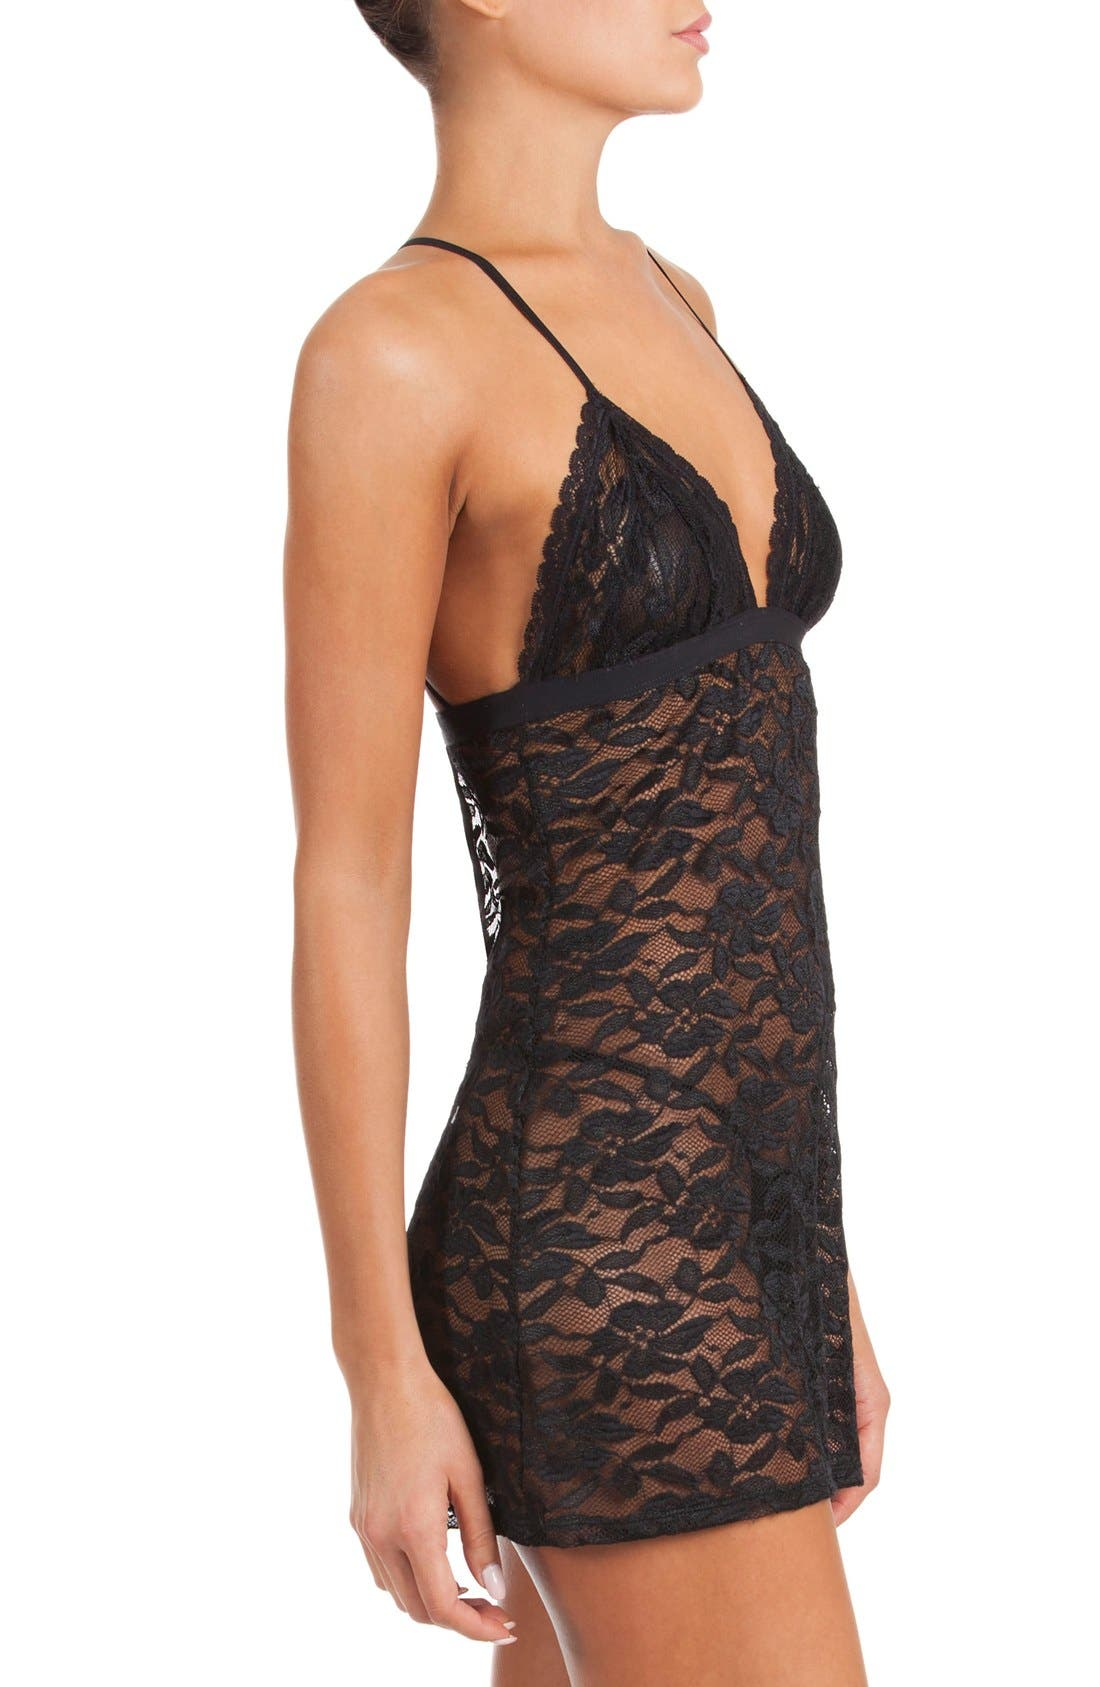 City Girl Chemise & Thong,                             Alternate thumbnail 3, color,                             Black